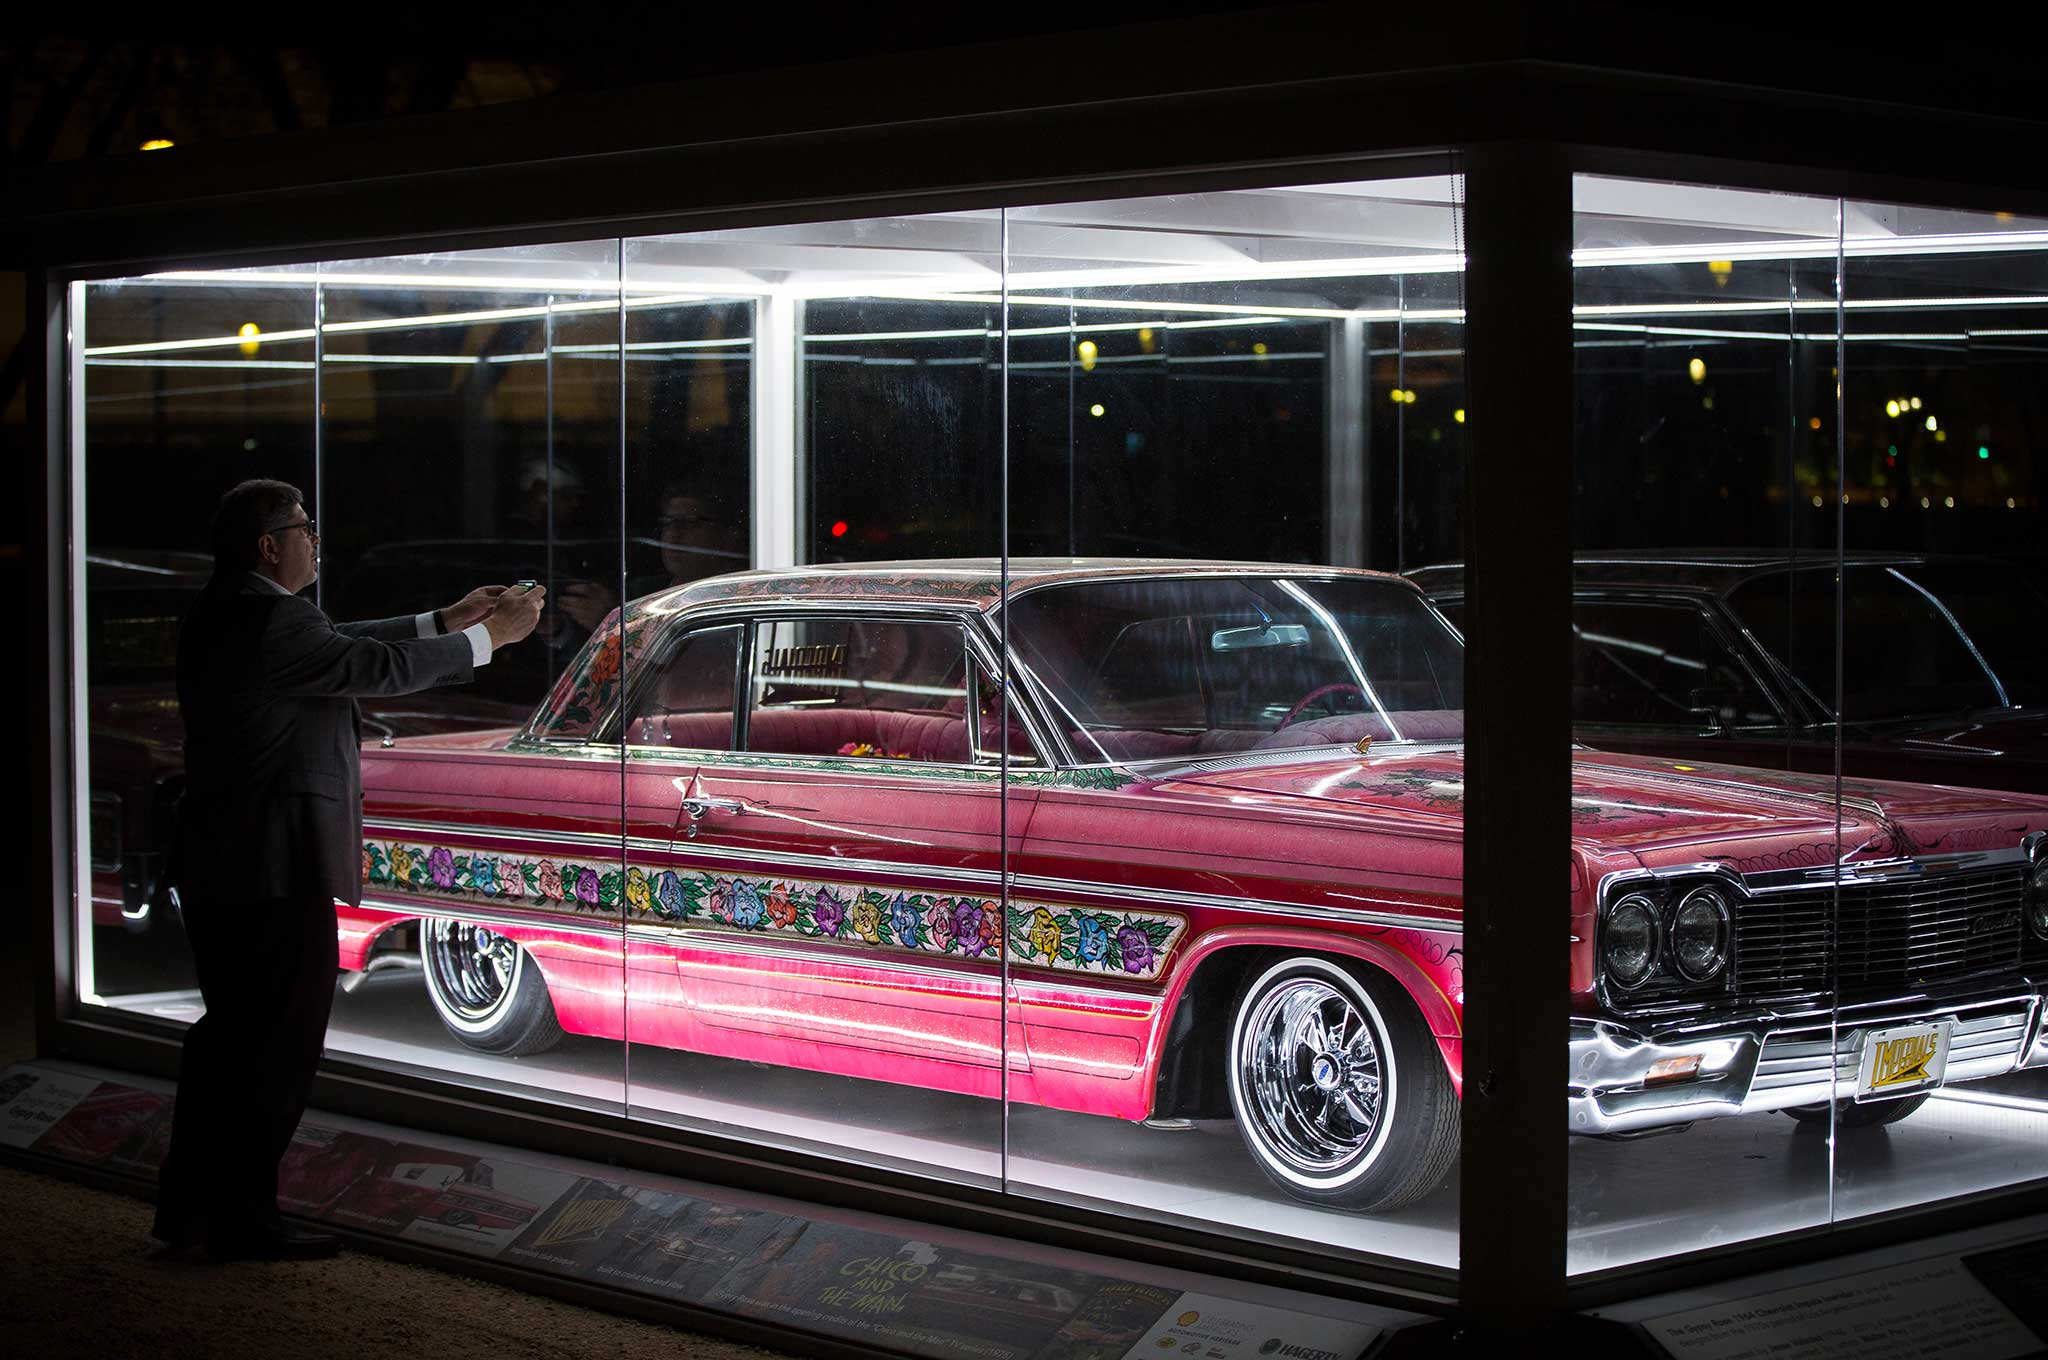 Gypsy Rose Becomes The First Lowrider Inducted Into The HVA